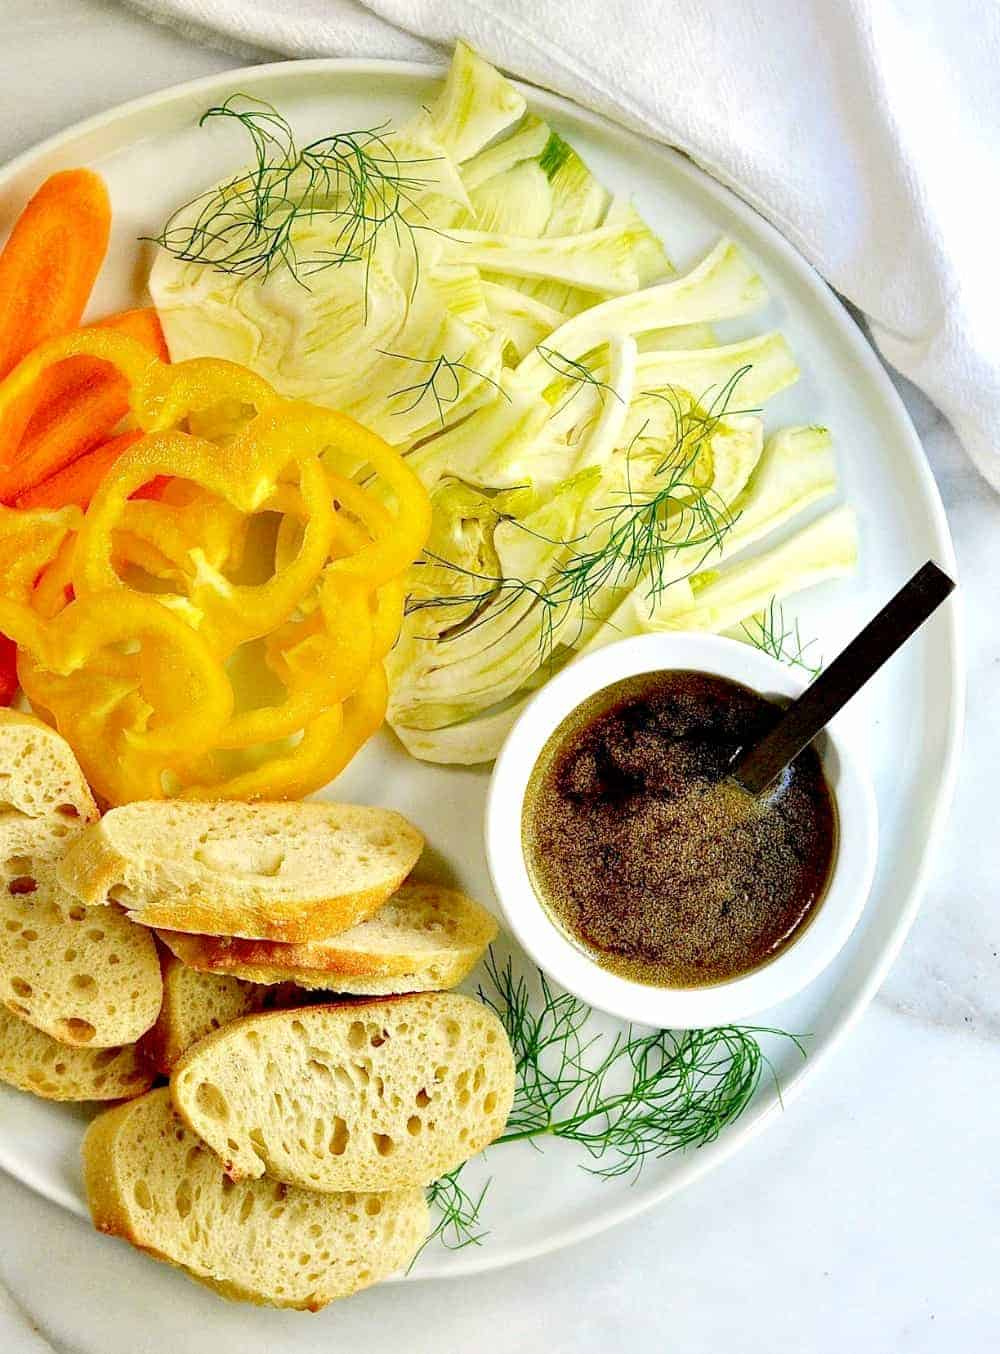 Homemade Bagna Cauda with Raw Vegetables and Bread